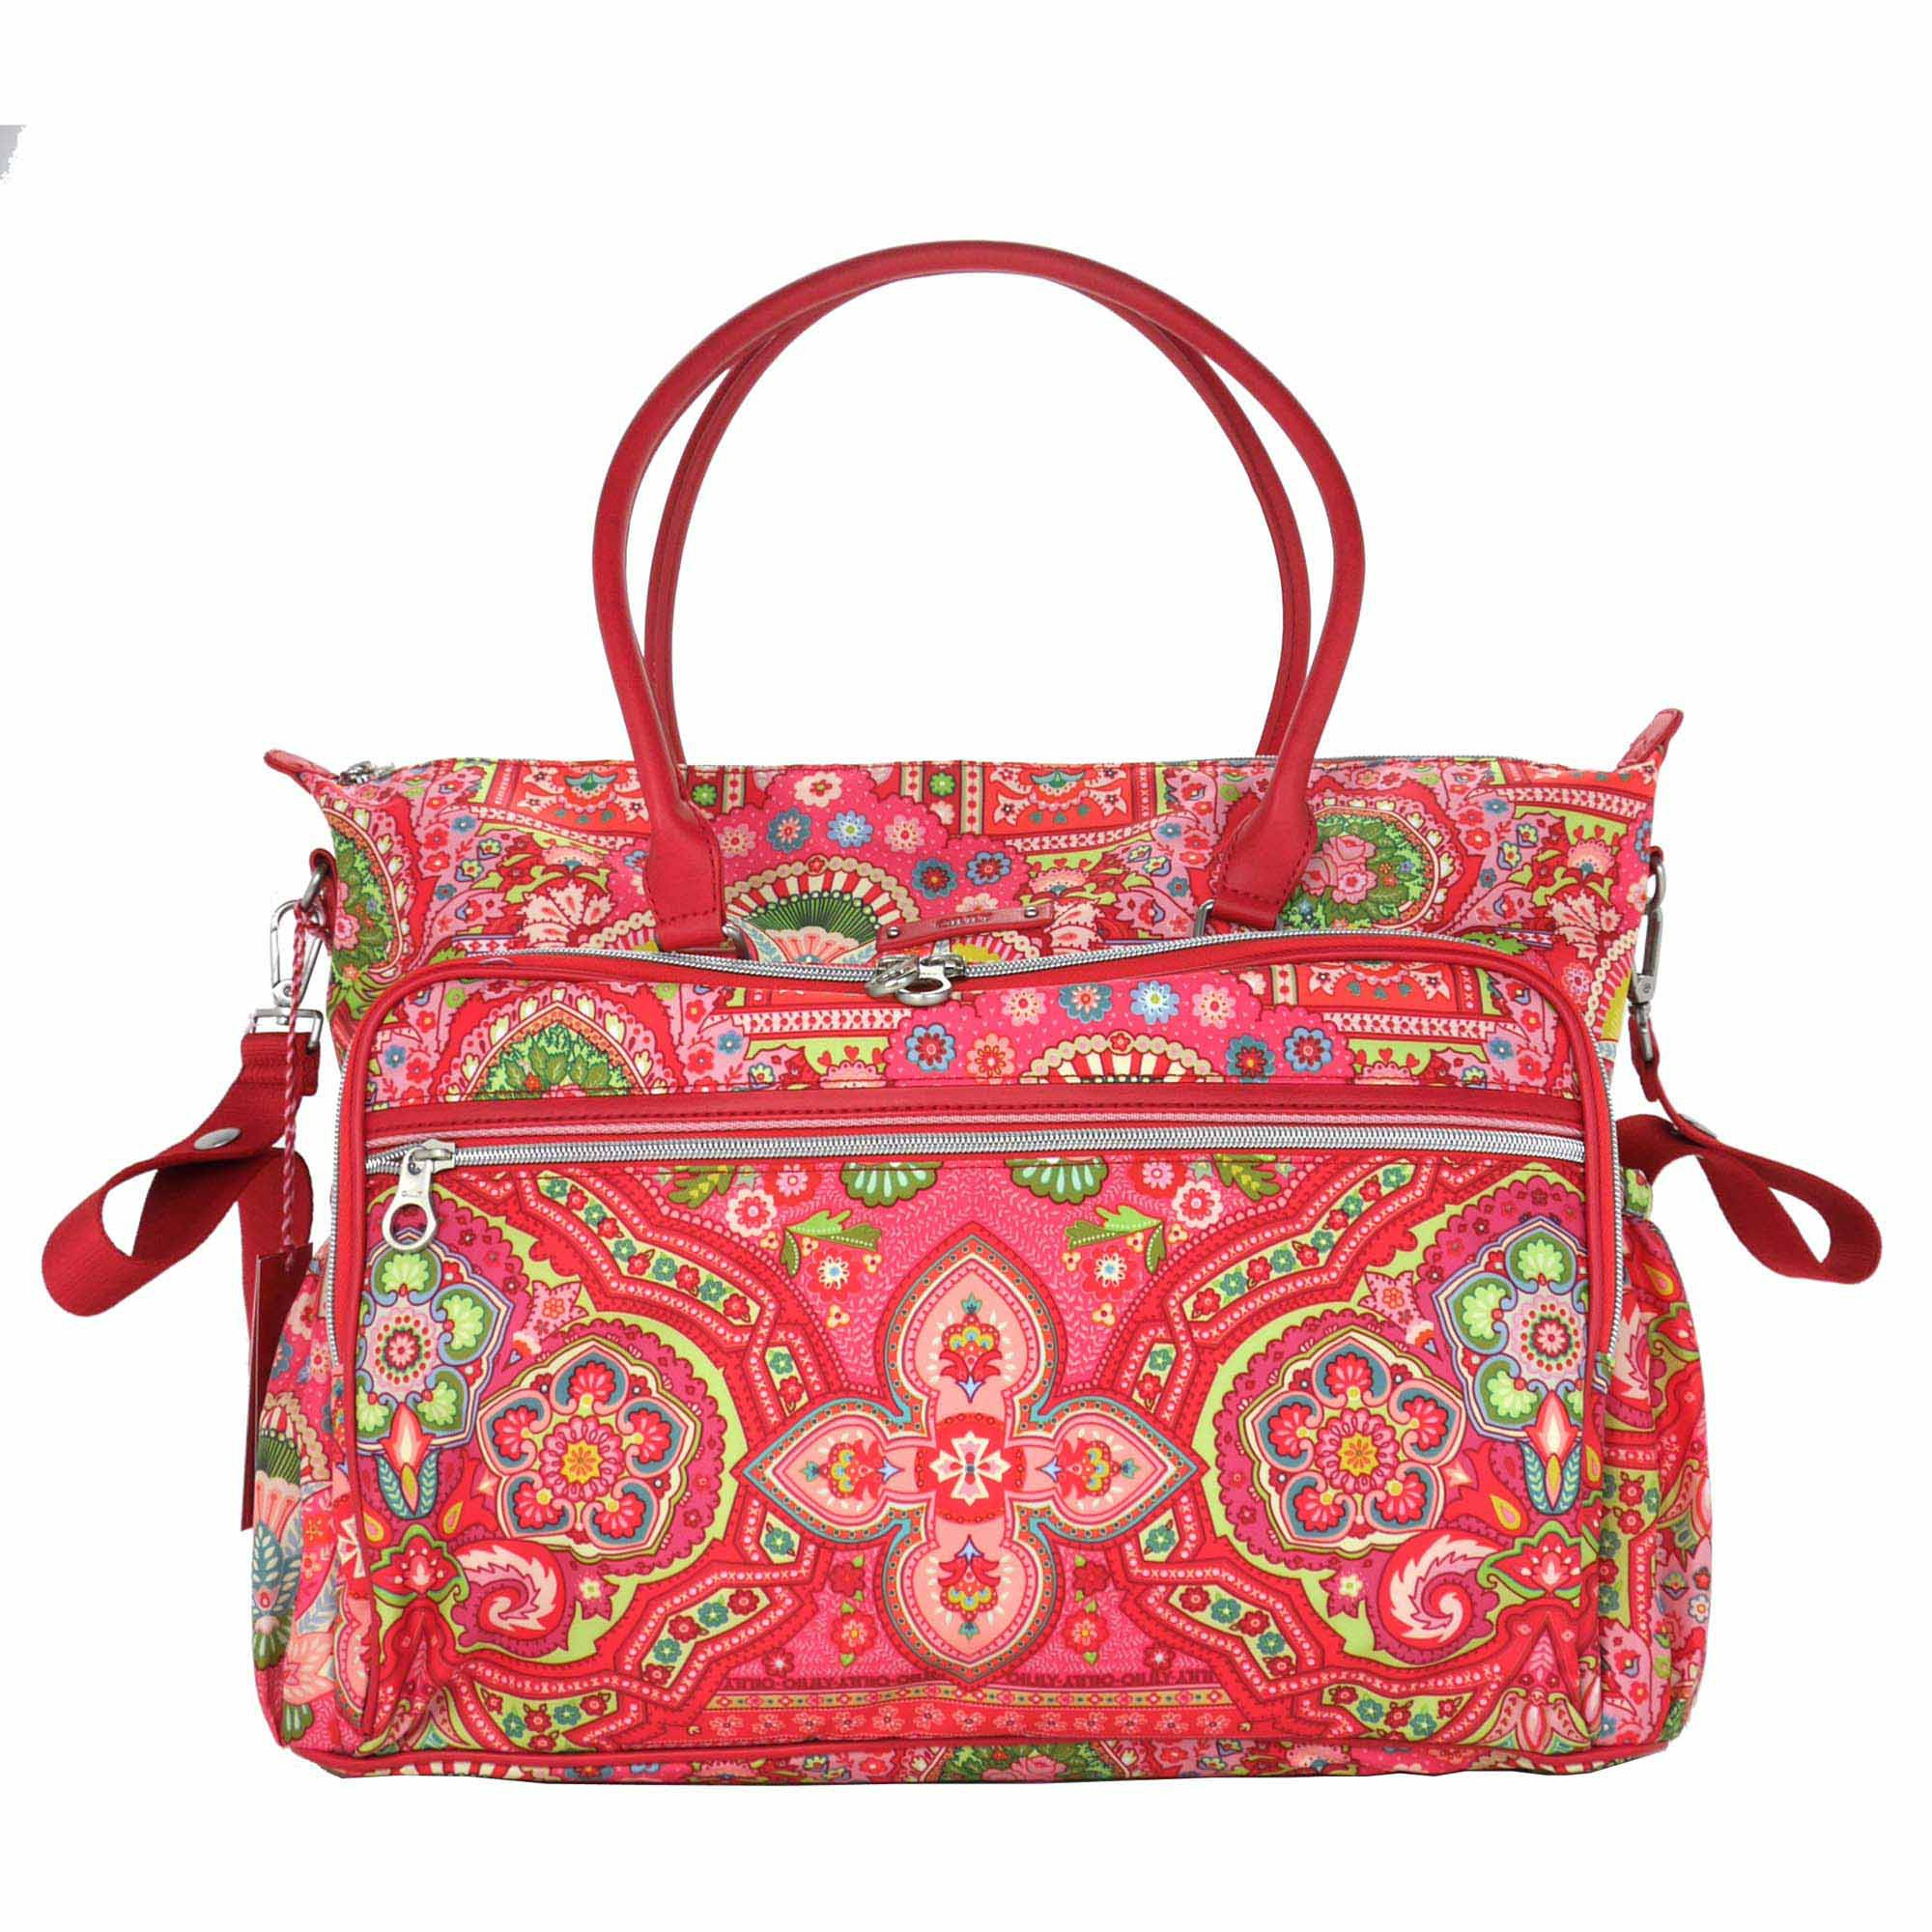 Oilily Diaper Bag Baby Bag Spring Ovation In 4 Colours